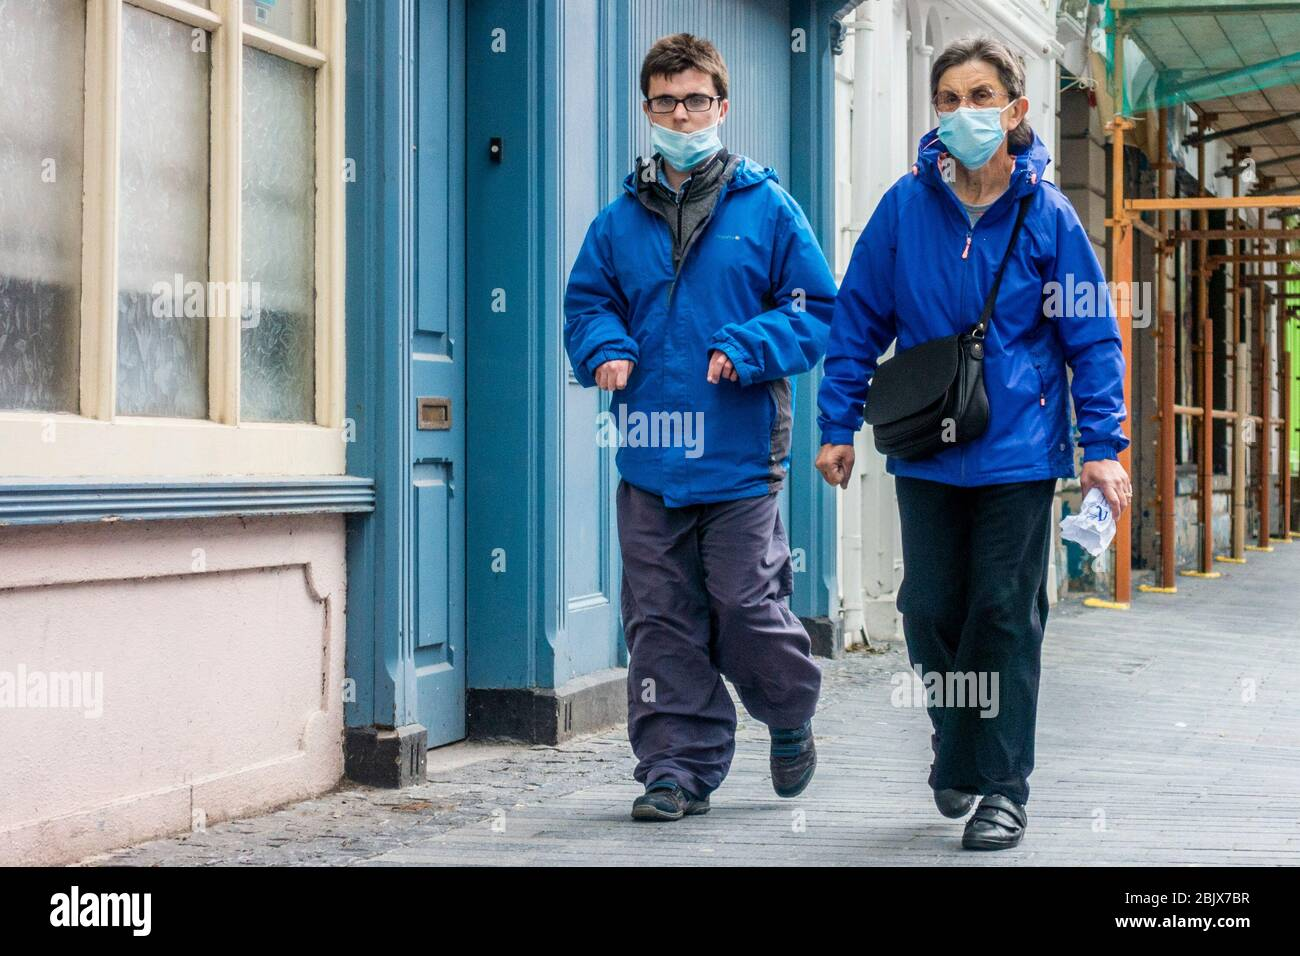 clonakilty-west-cork-ireland-30th-apr-2020-a-man-and-woman-walk-down-clonakilty-main-street-wearing-face-masks-to-protect-themselves-from-covid-19-credit-ag-newsalamy-live-news-2BJX7BR.jpg